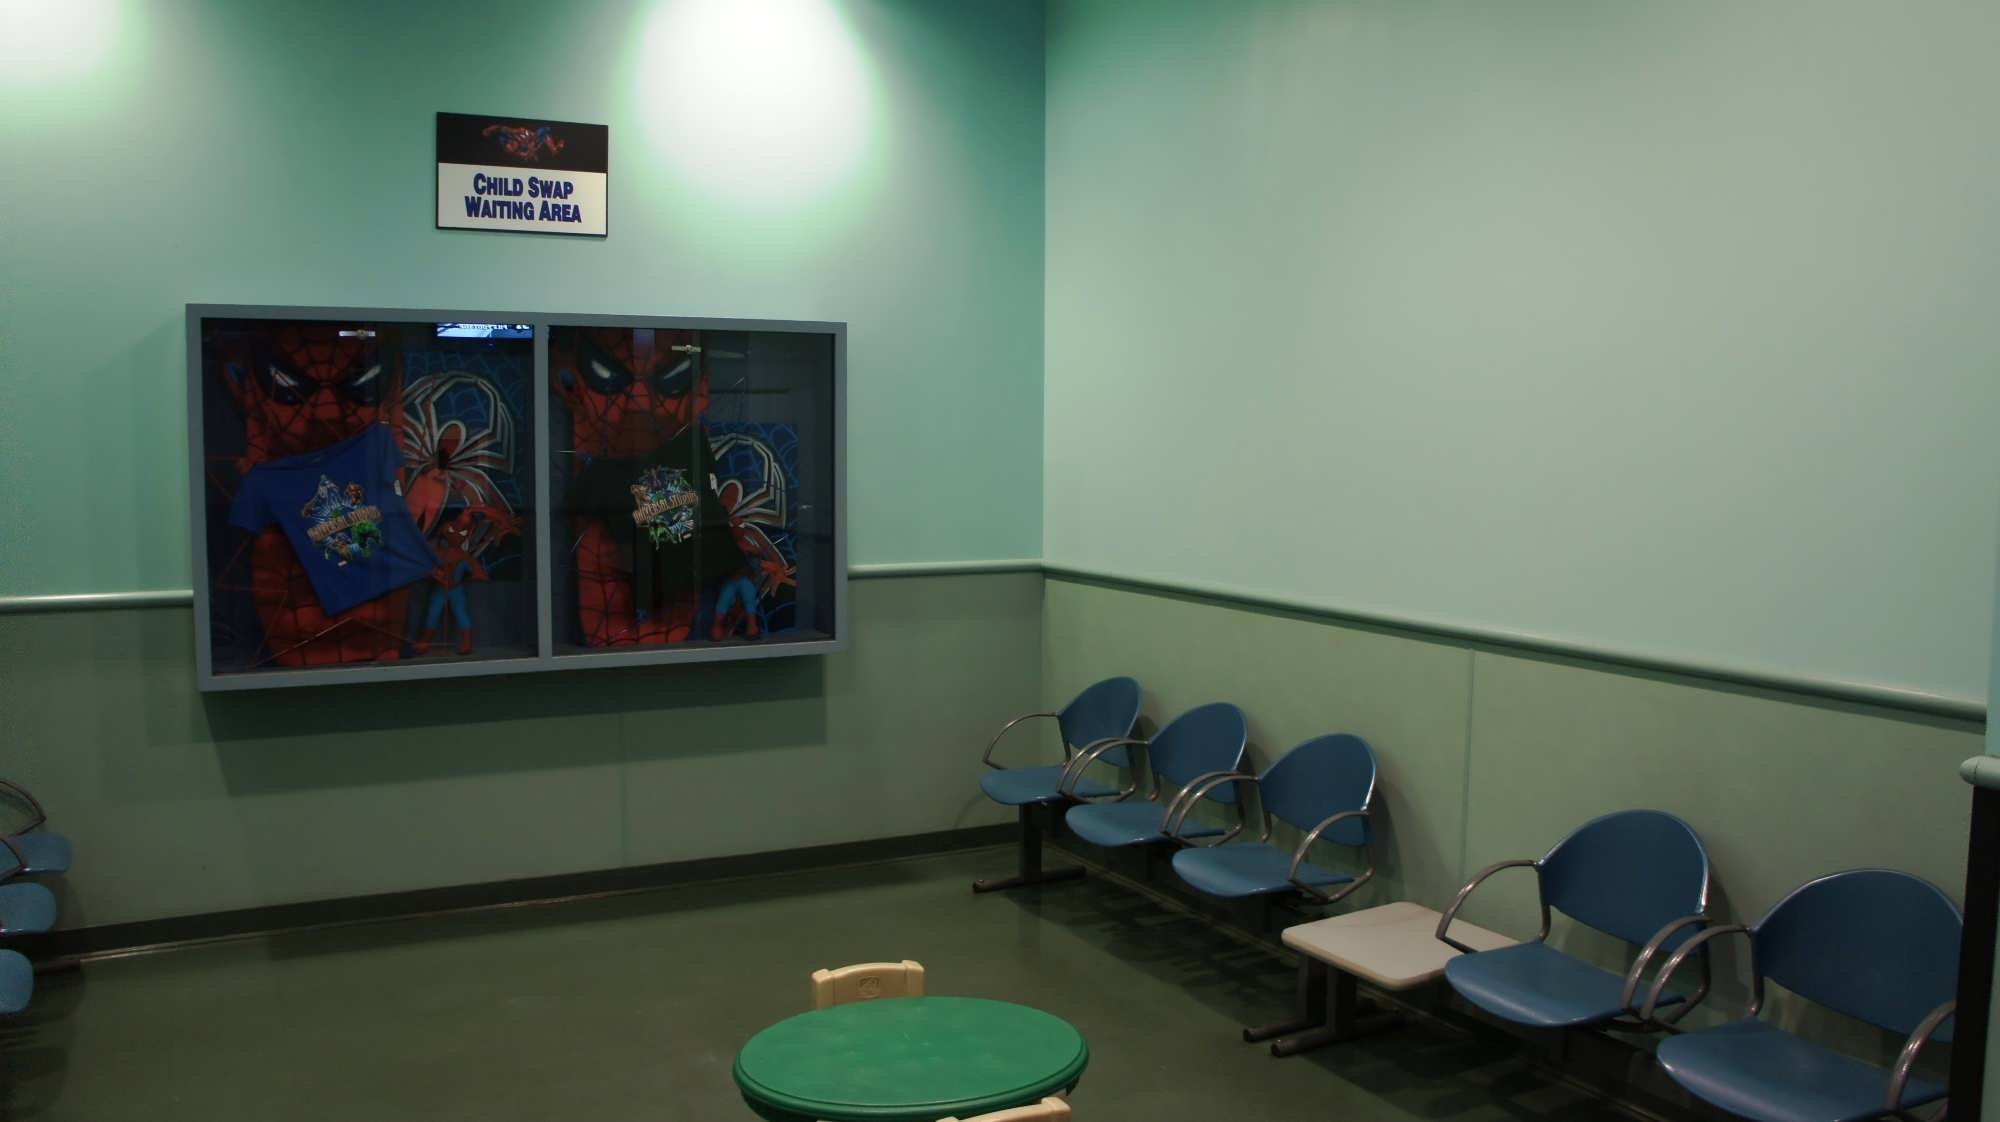 The Child Swap room at The Amazing Adventures of Spider-Man